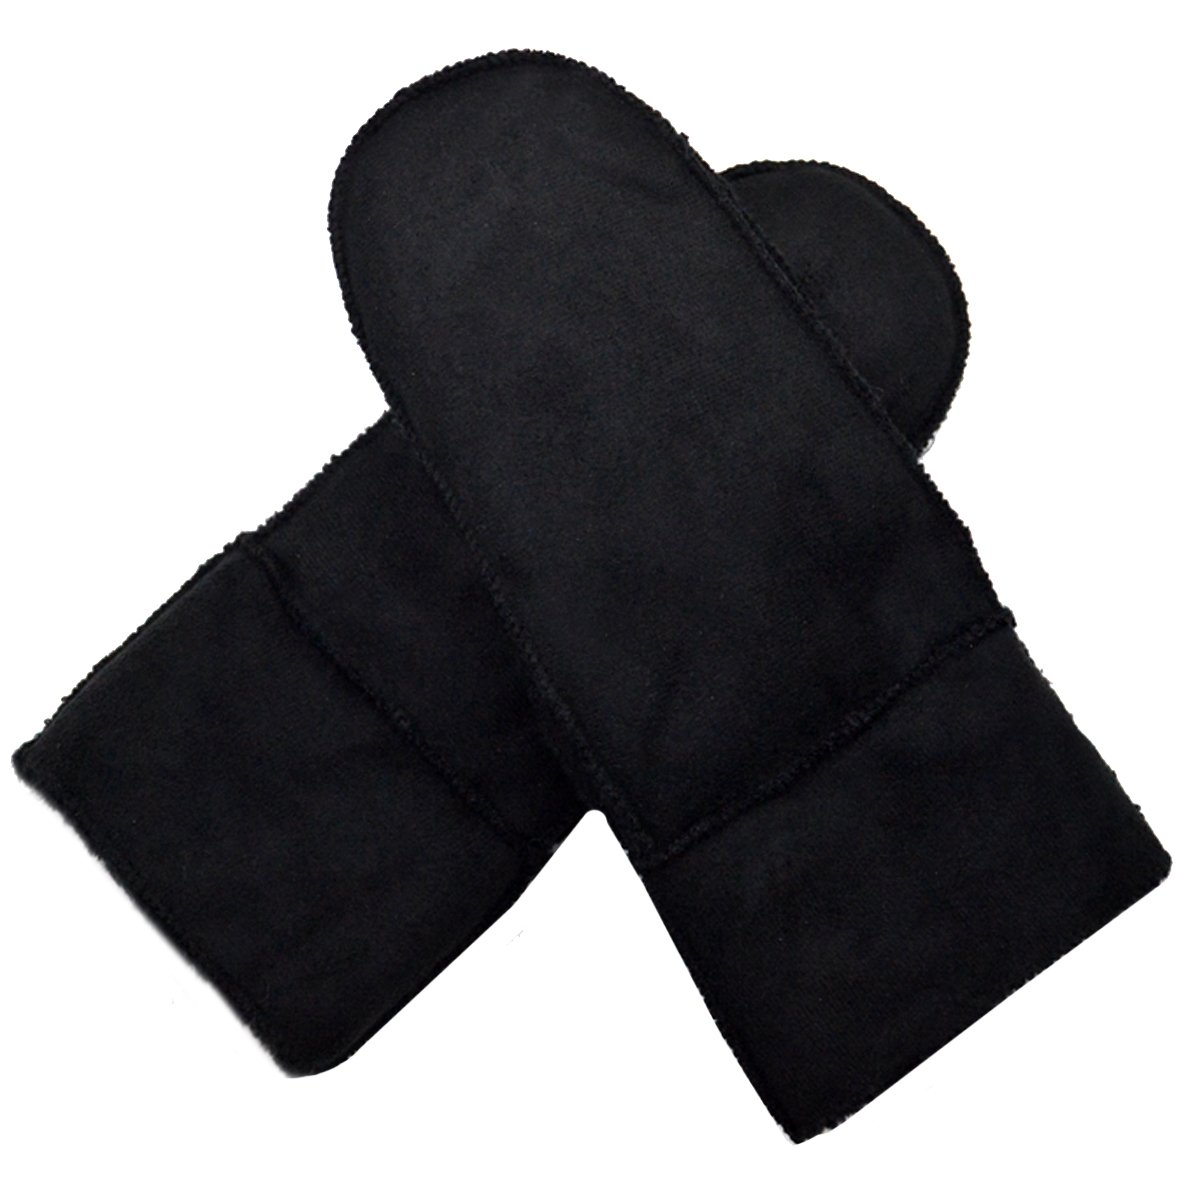 YAOSEN Men Winter Warm Mittens Suede Fabric Gloves with Fur Cuff (Black)